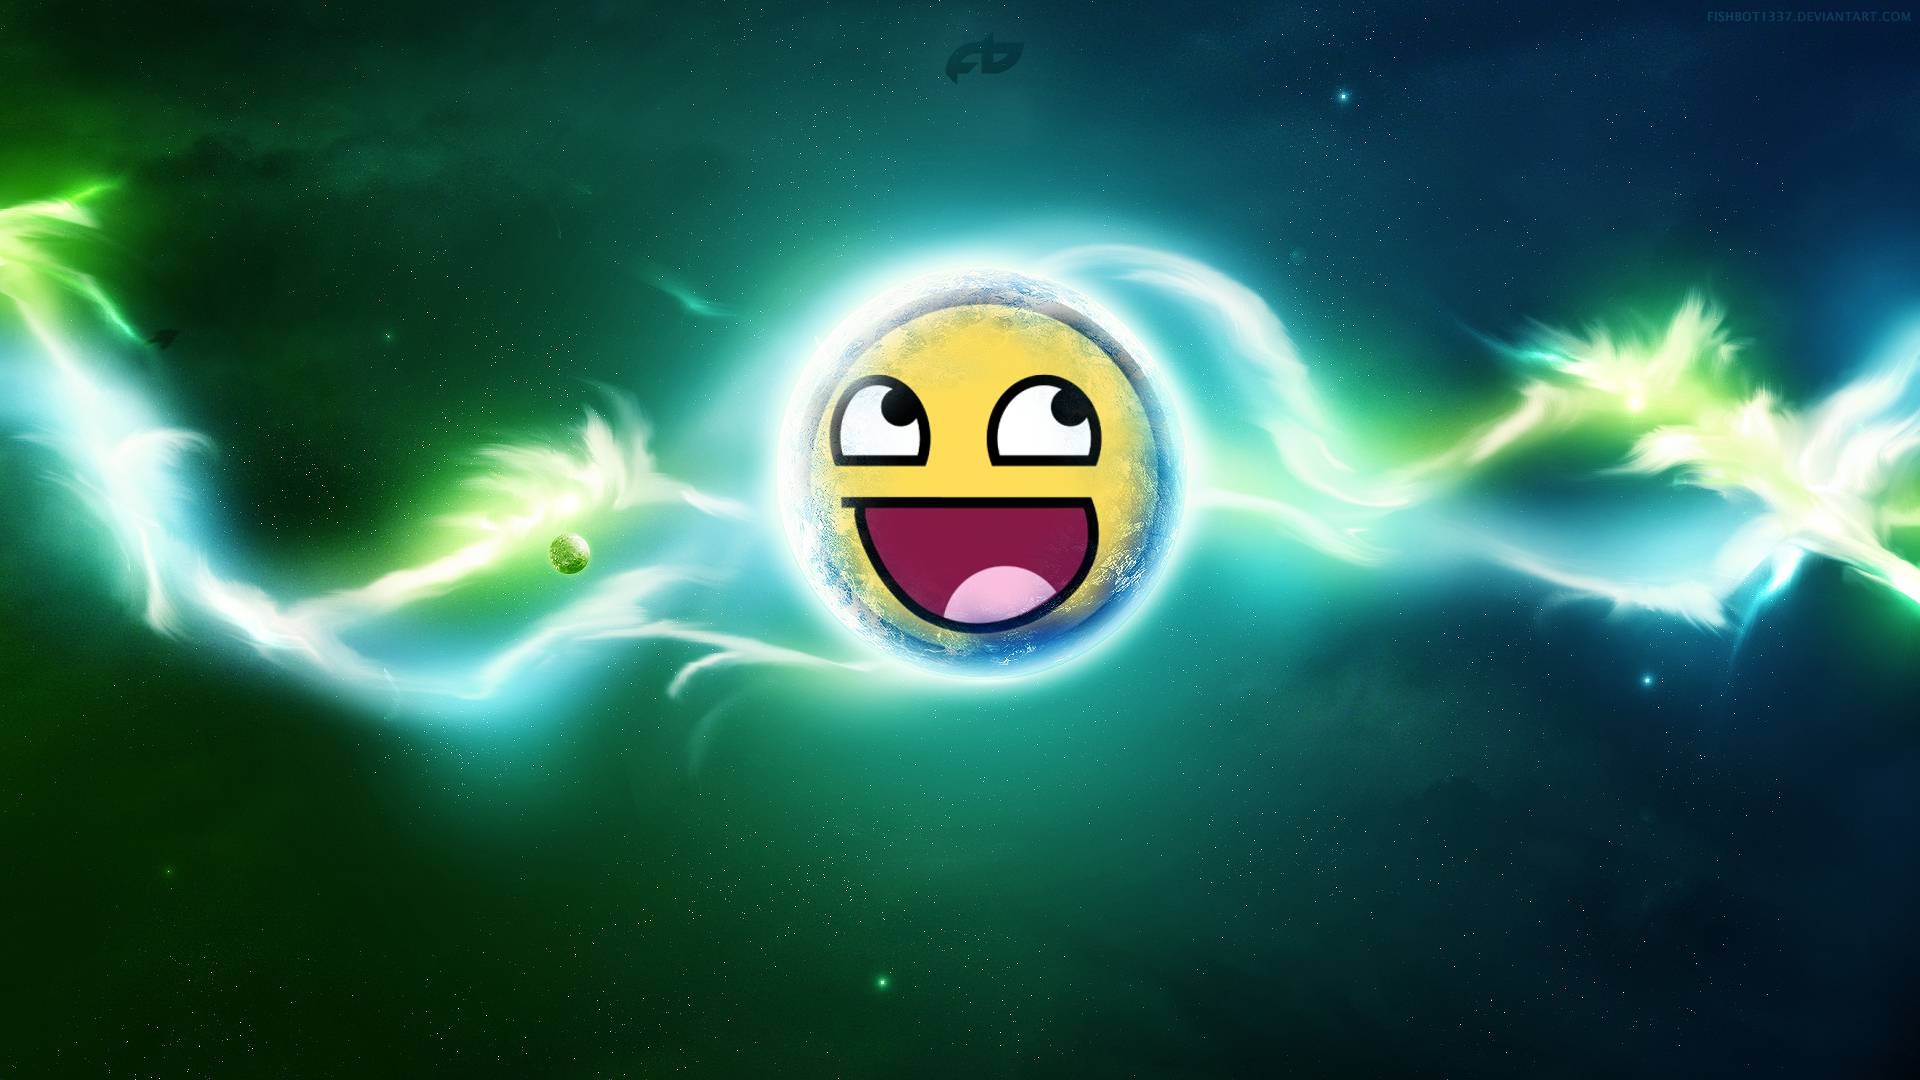 Awesome Smiley Wallpapers Wallpaper Cave HD Wallpapers Download Free Images Wallpaper [1000image.com]